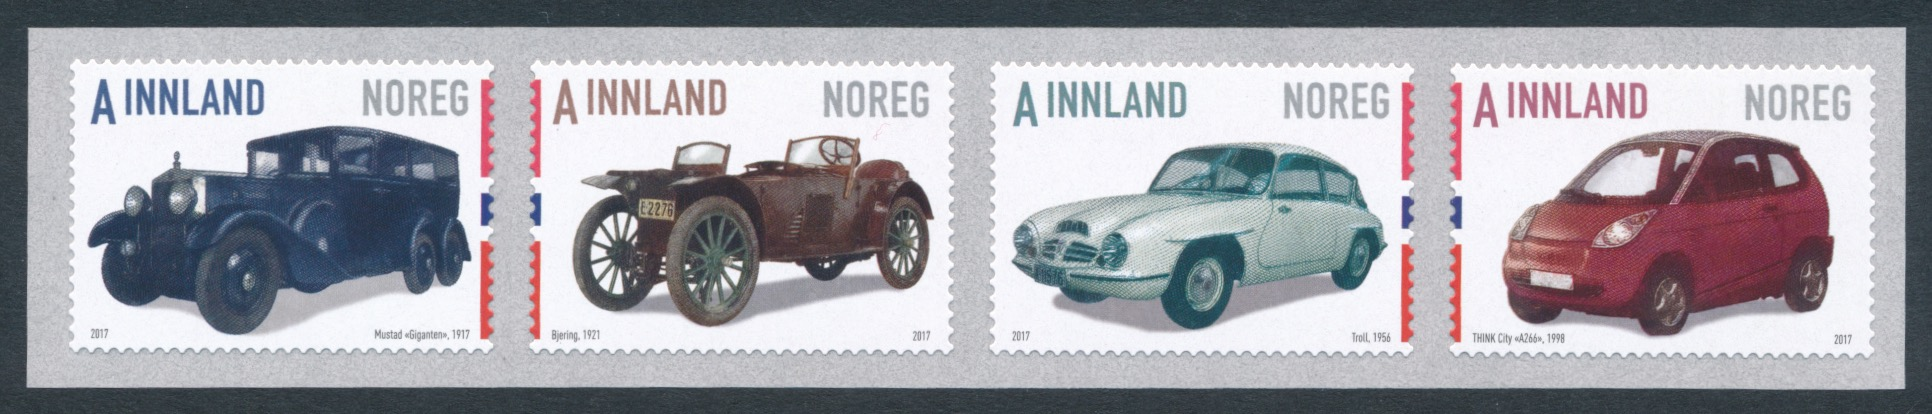 http://www.norstamps.com/content/images/stamps/norway/1966-69.jpeg